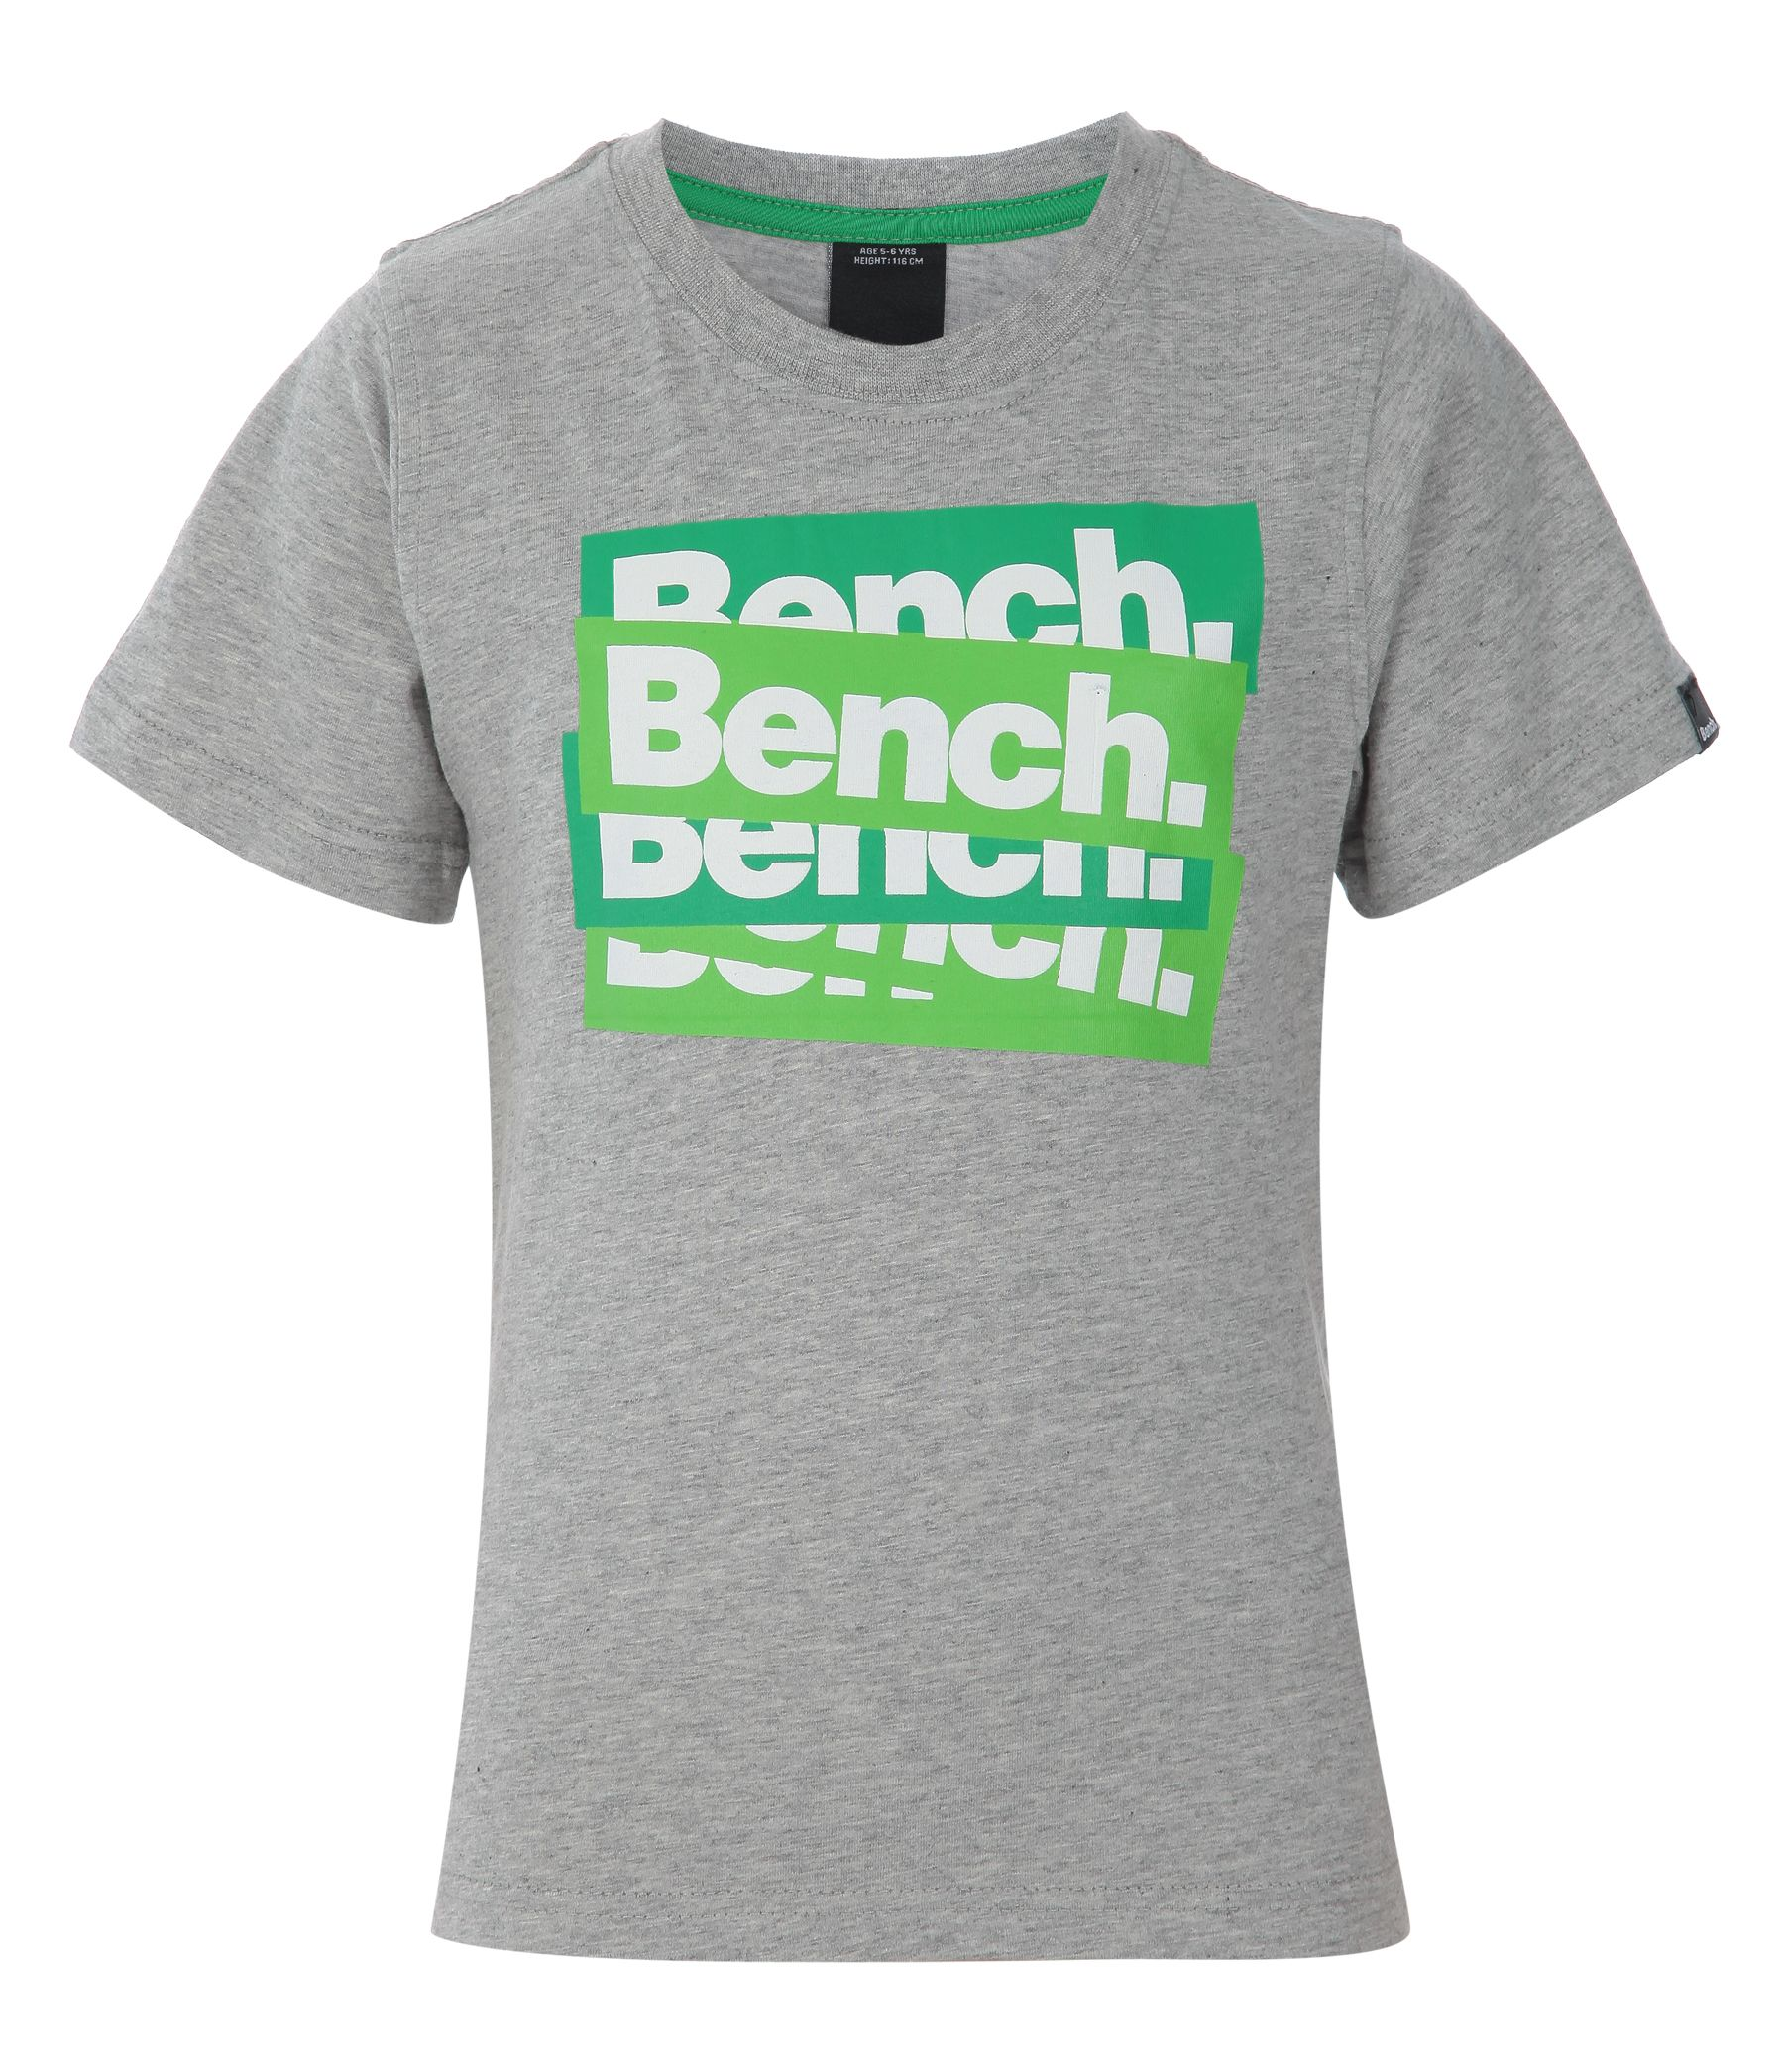 Childrens Bench New sticker T-shirt, Grey